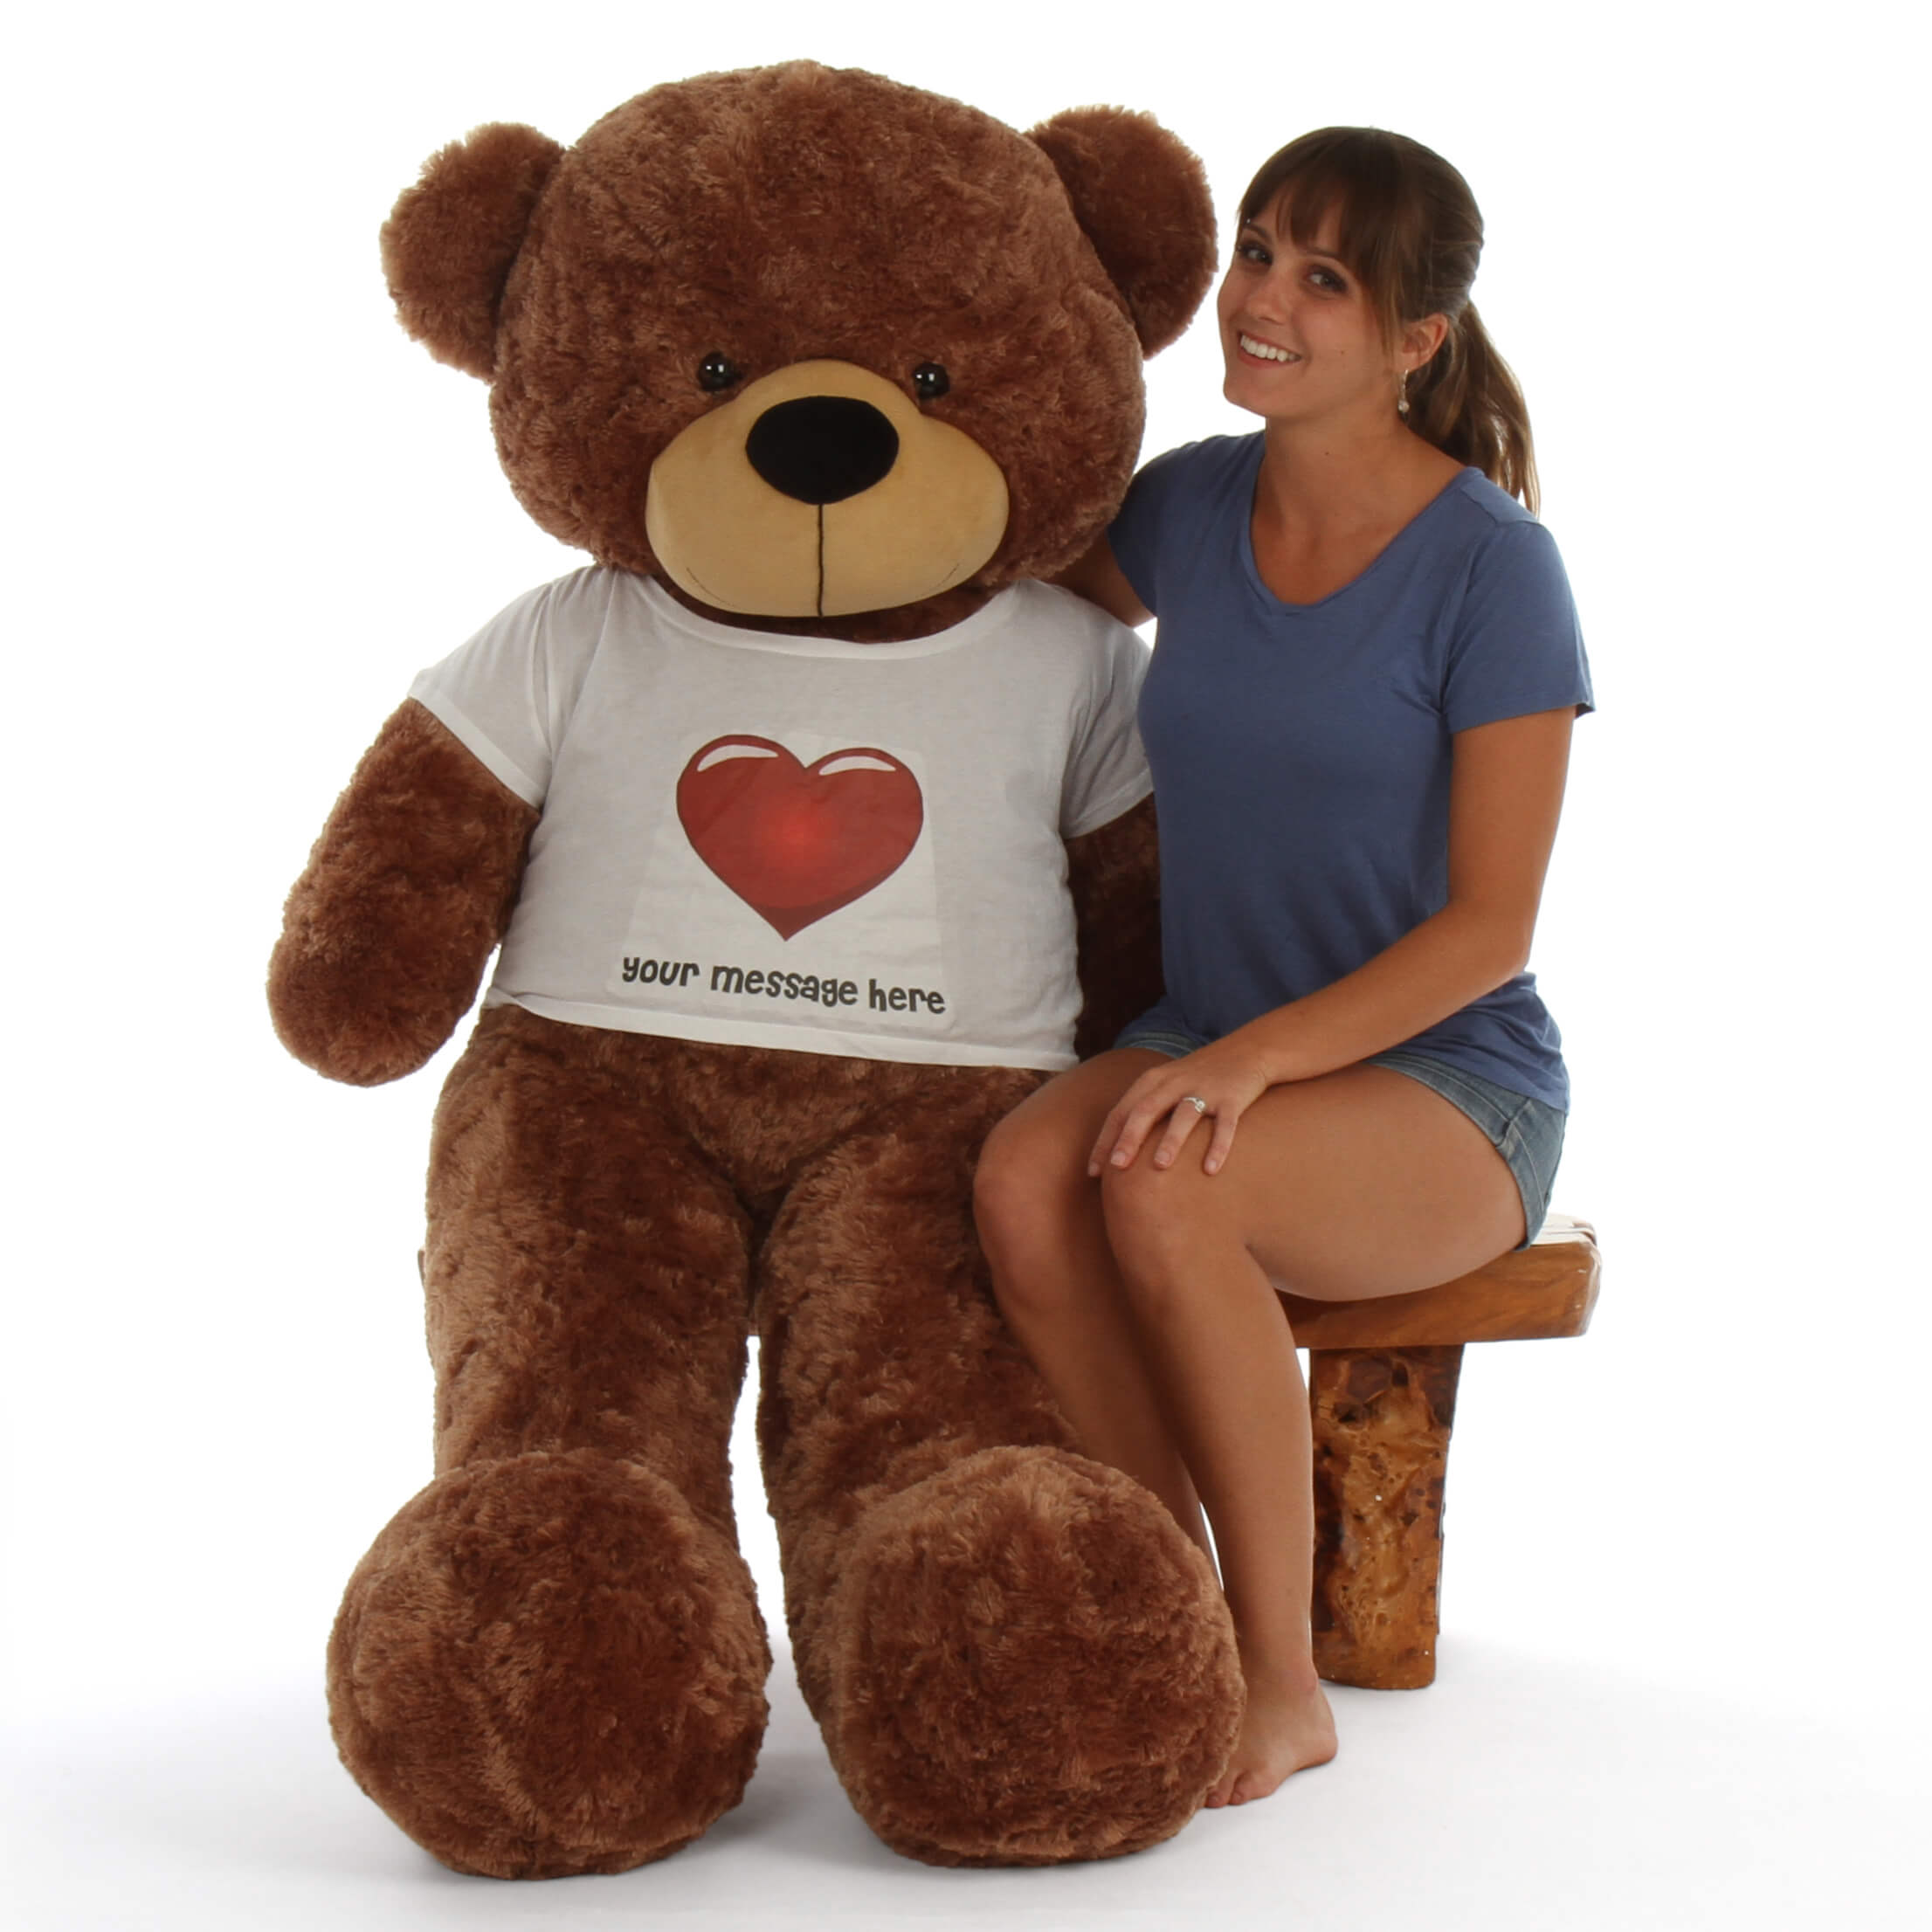 5ft-life-size-personalized-mocha-teddy-bear-sunny-cuddles-in-red-heart-shirt-1.jpg